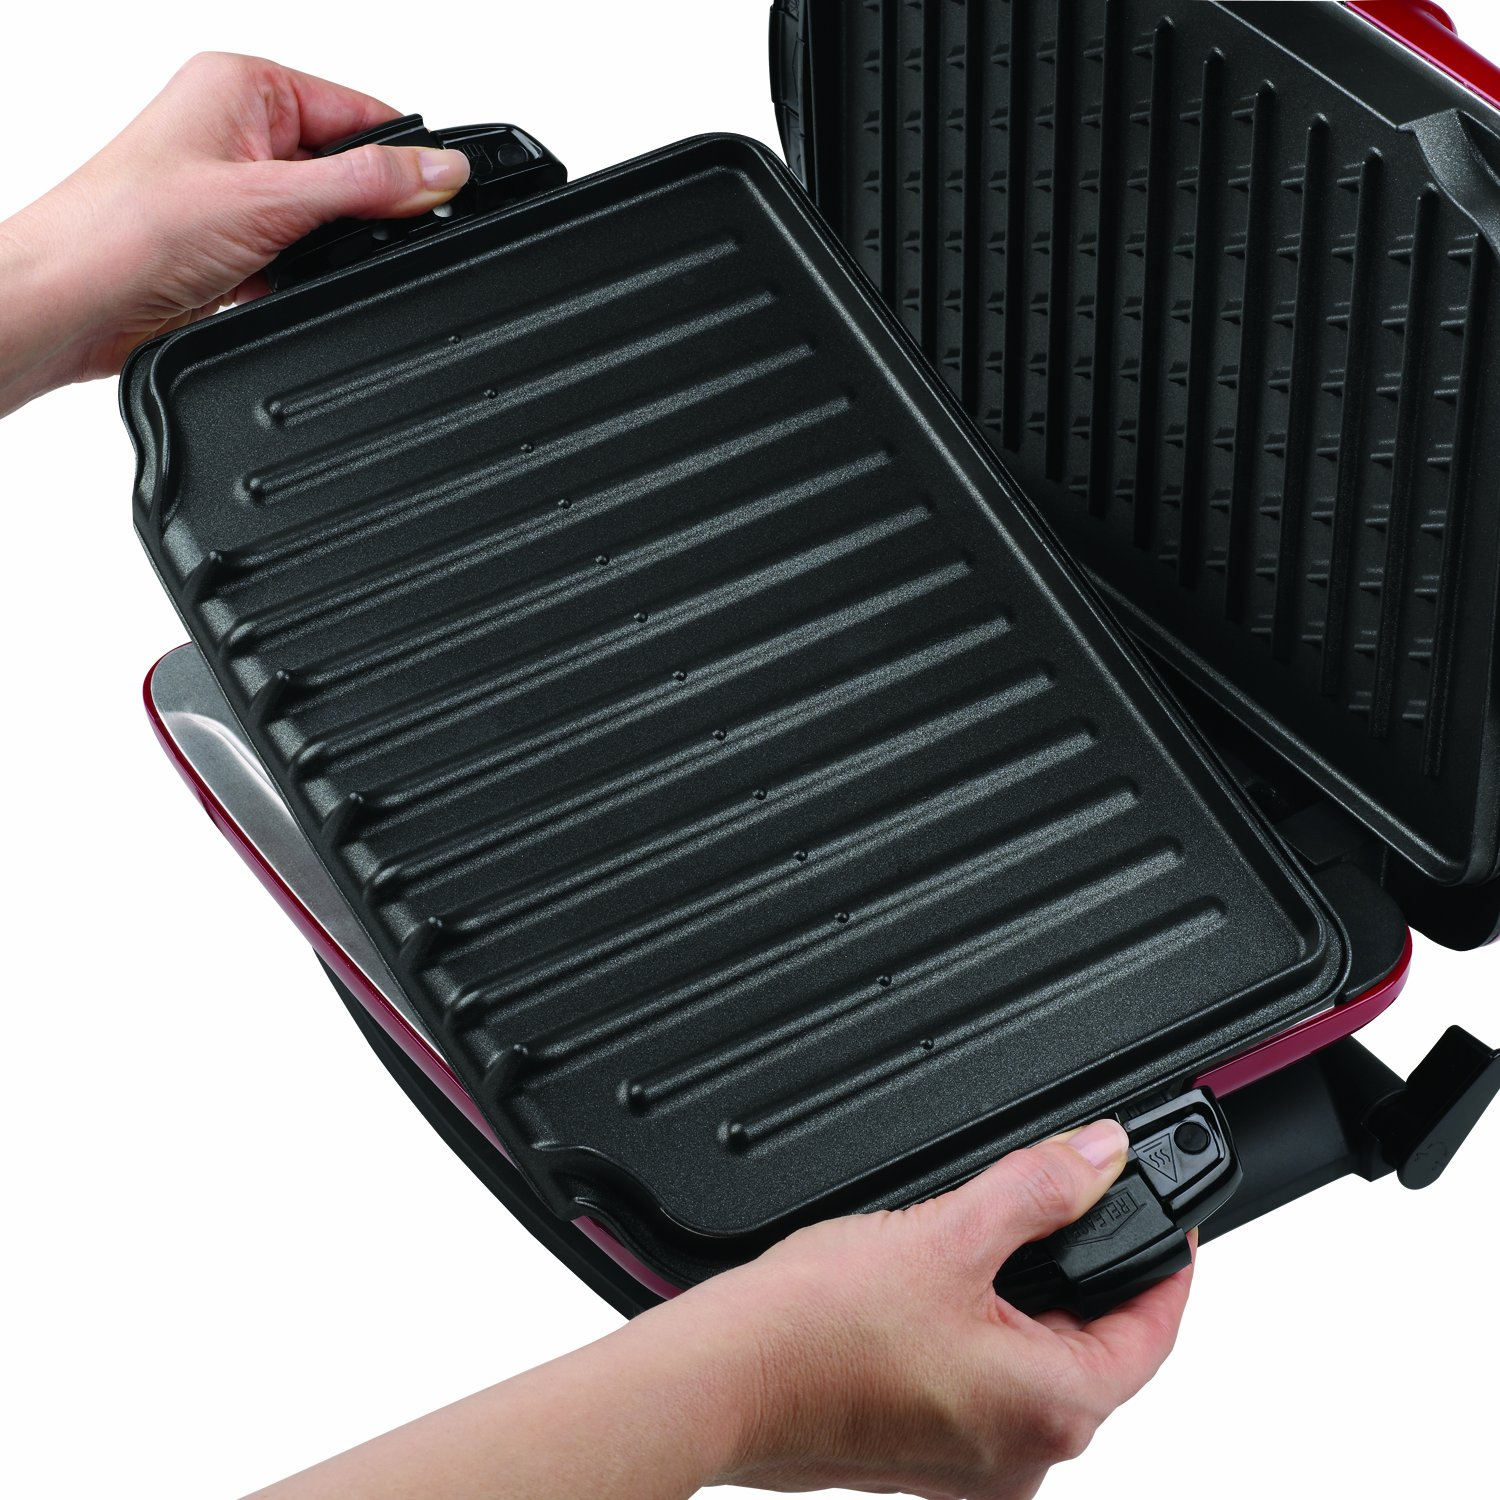 review of best waffle maker and grill with removable plates